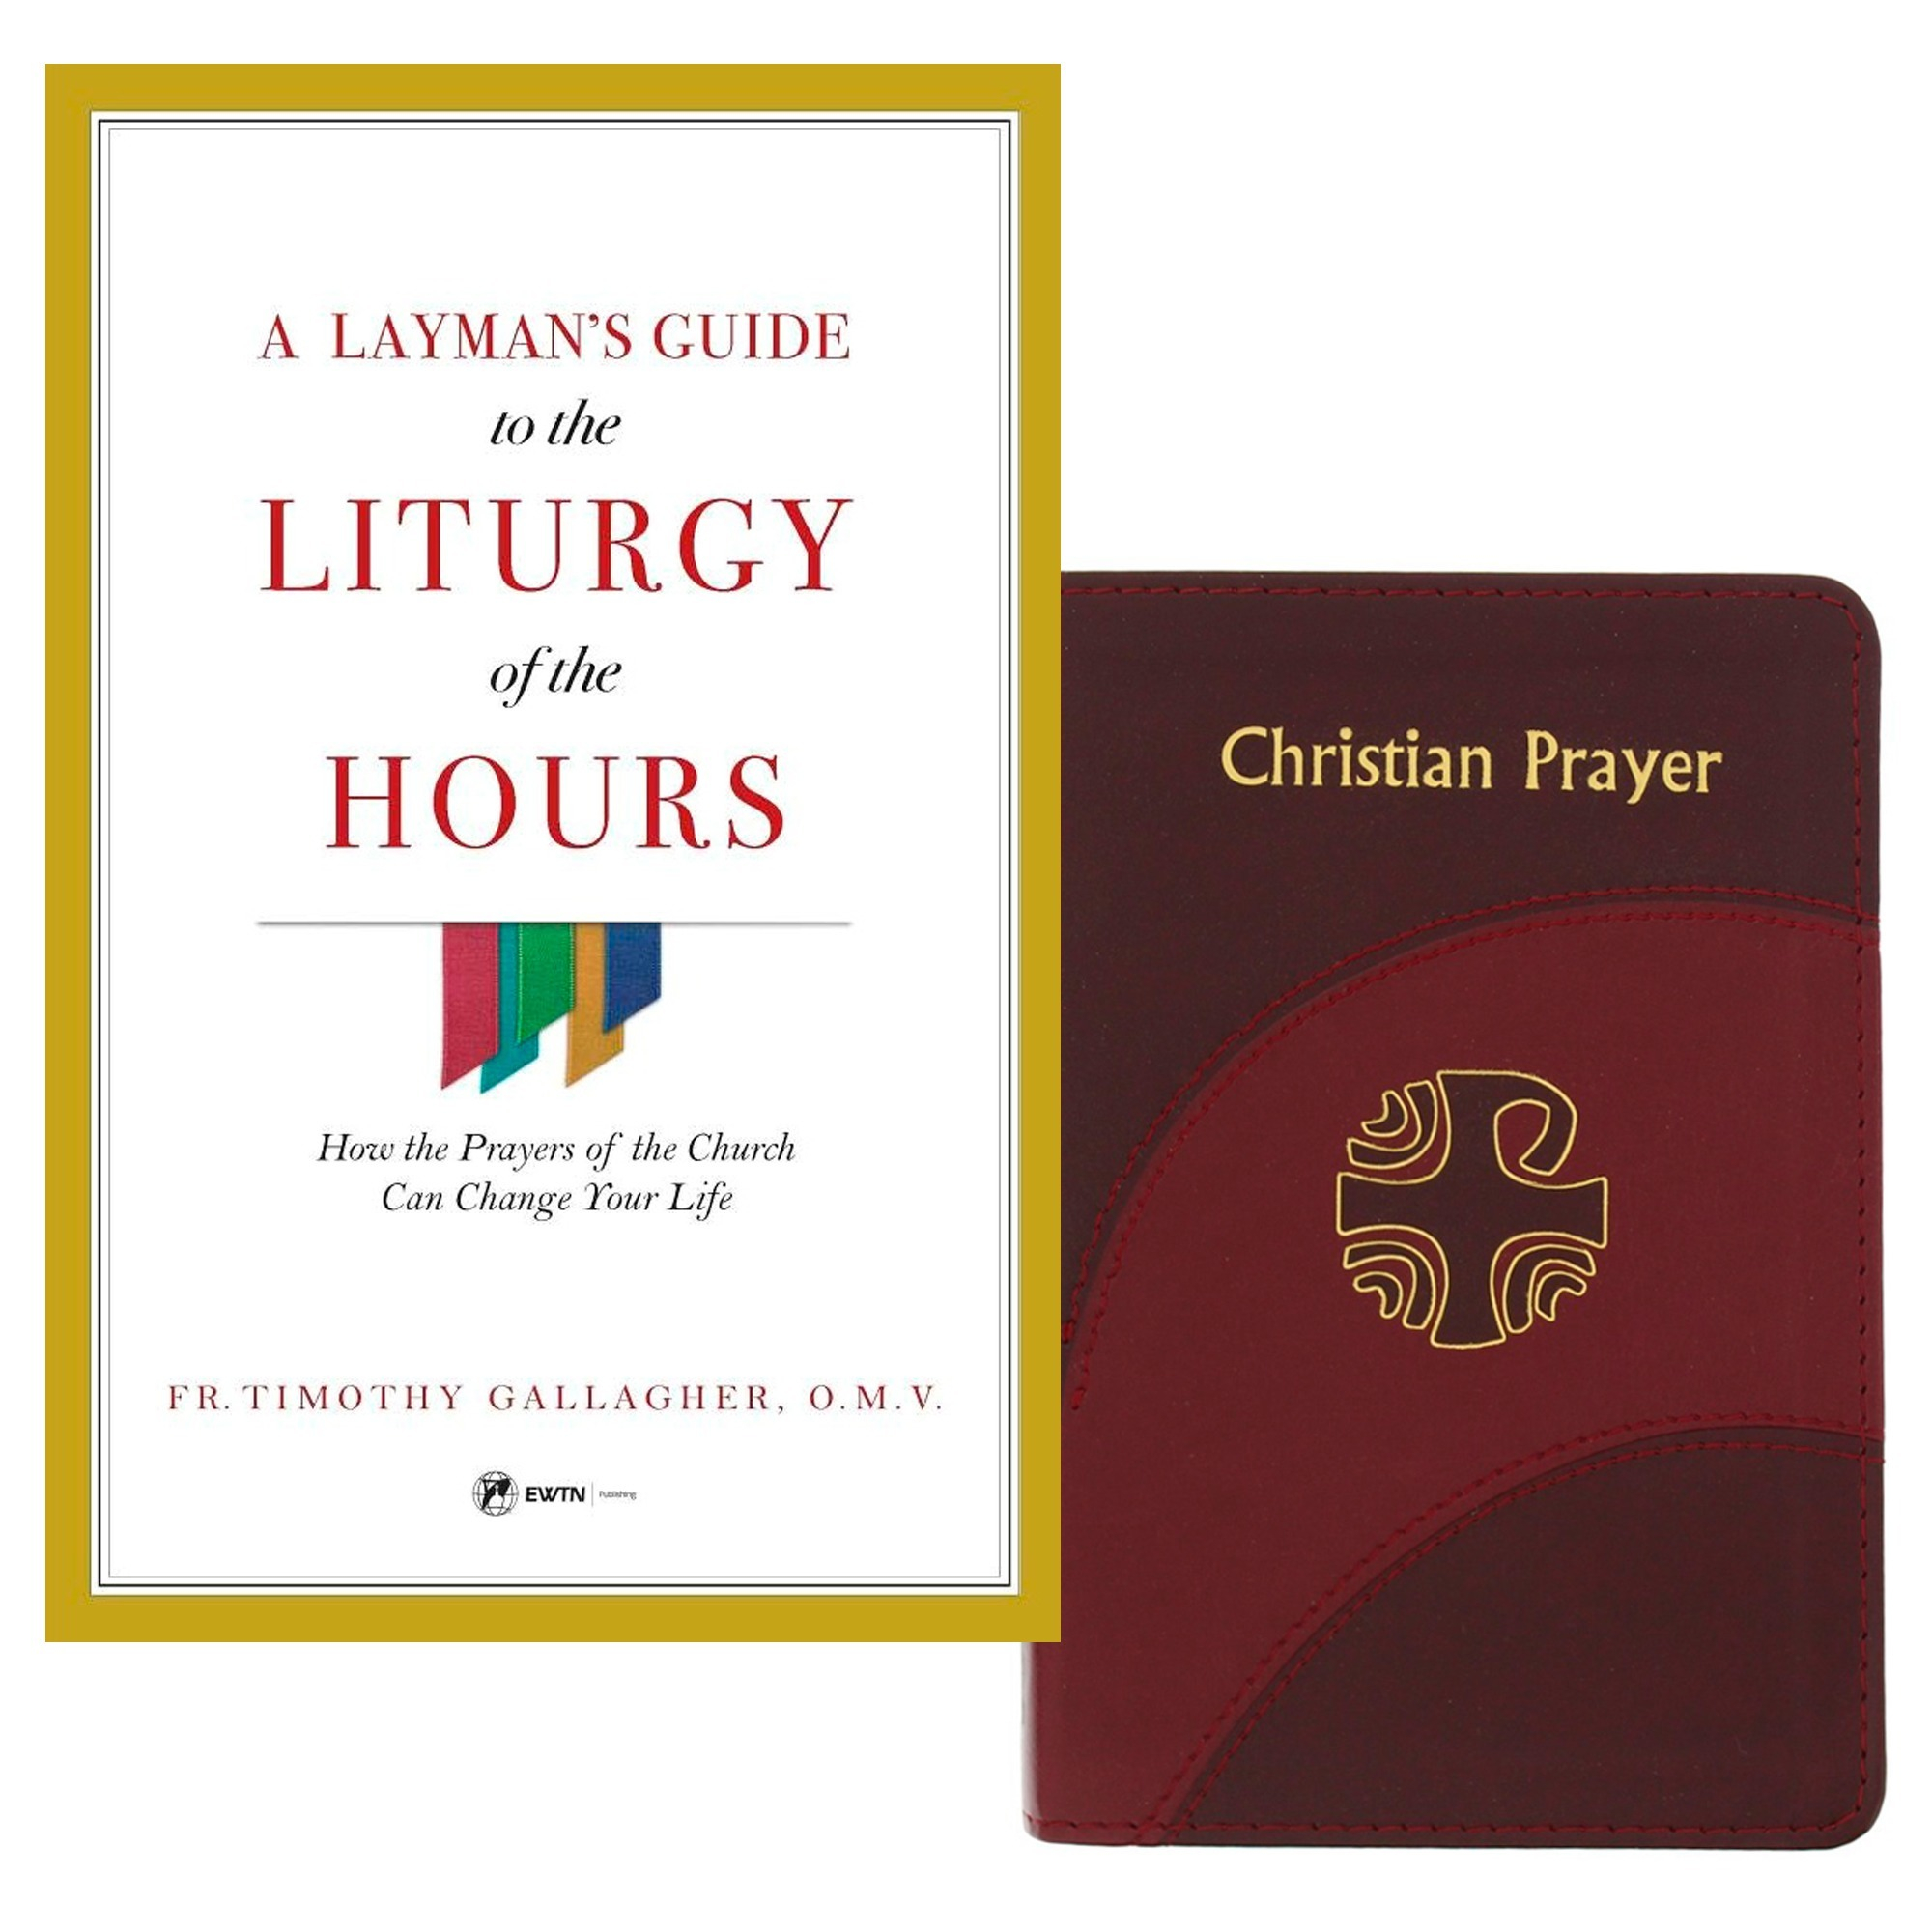 A Layman's Guide To Liturgy Of The Hours - How The Prayers Of The Church  Can Change Your Life & Christian Prayer (2 Book Set) With Regard To Liturgy Of The Hours Printable